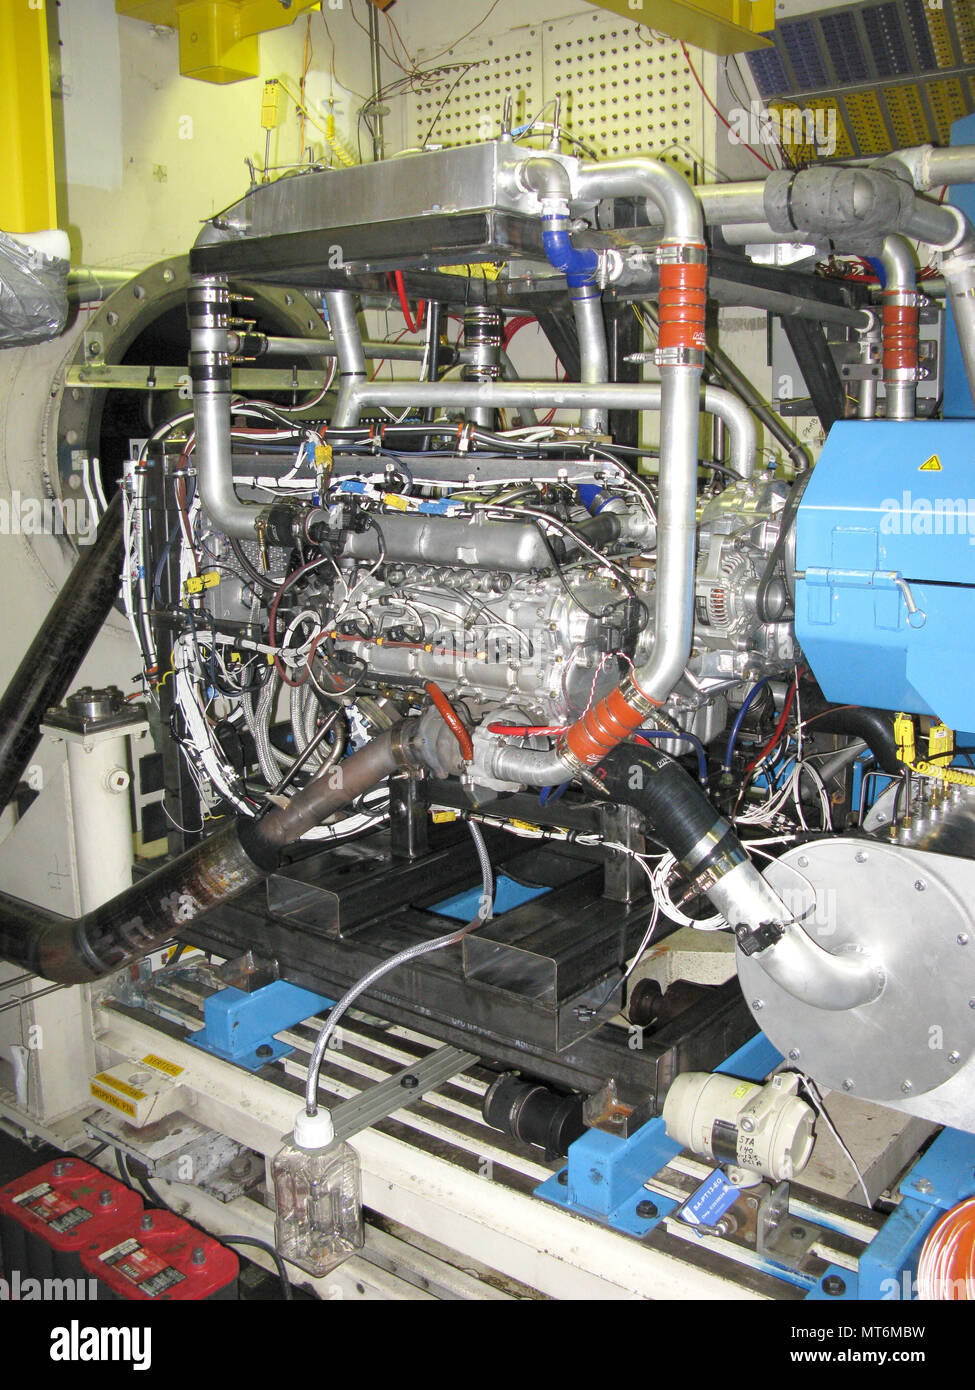 Fuel Cell Propulsion Stock Photos Arnold Filters The Afrl Advanced Power Technology Offices High Efficiency Innovative Aviation Diesel Engine Is Shown Here In